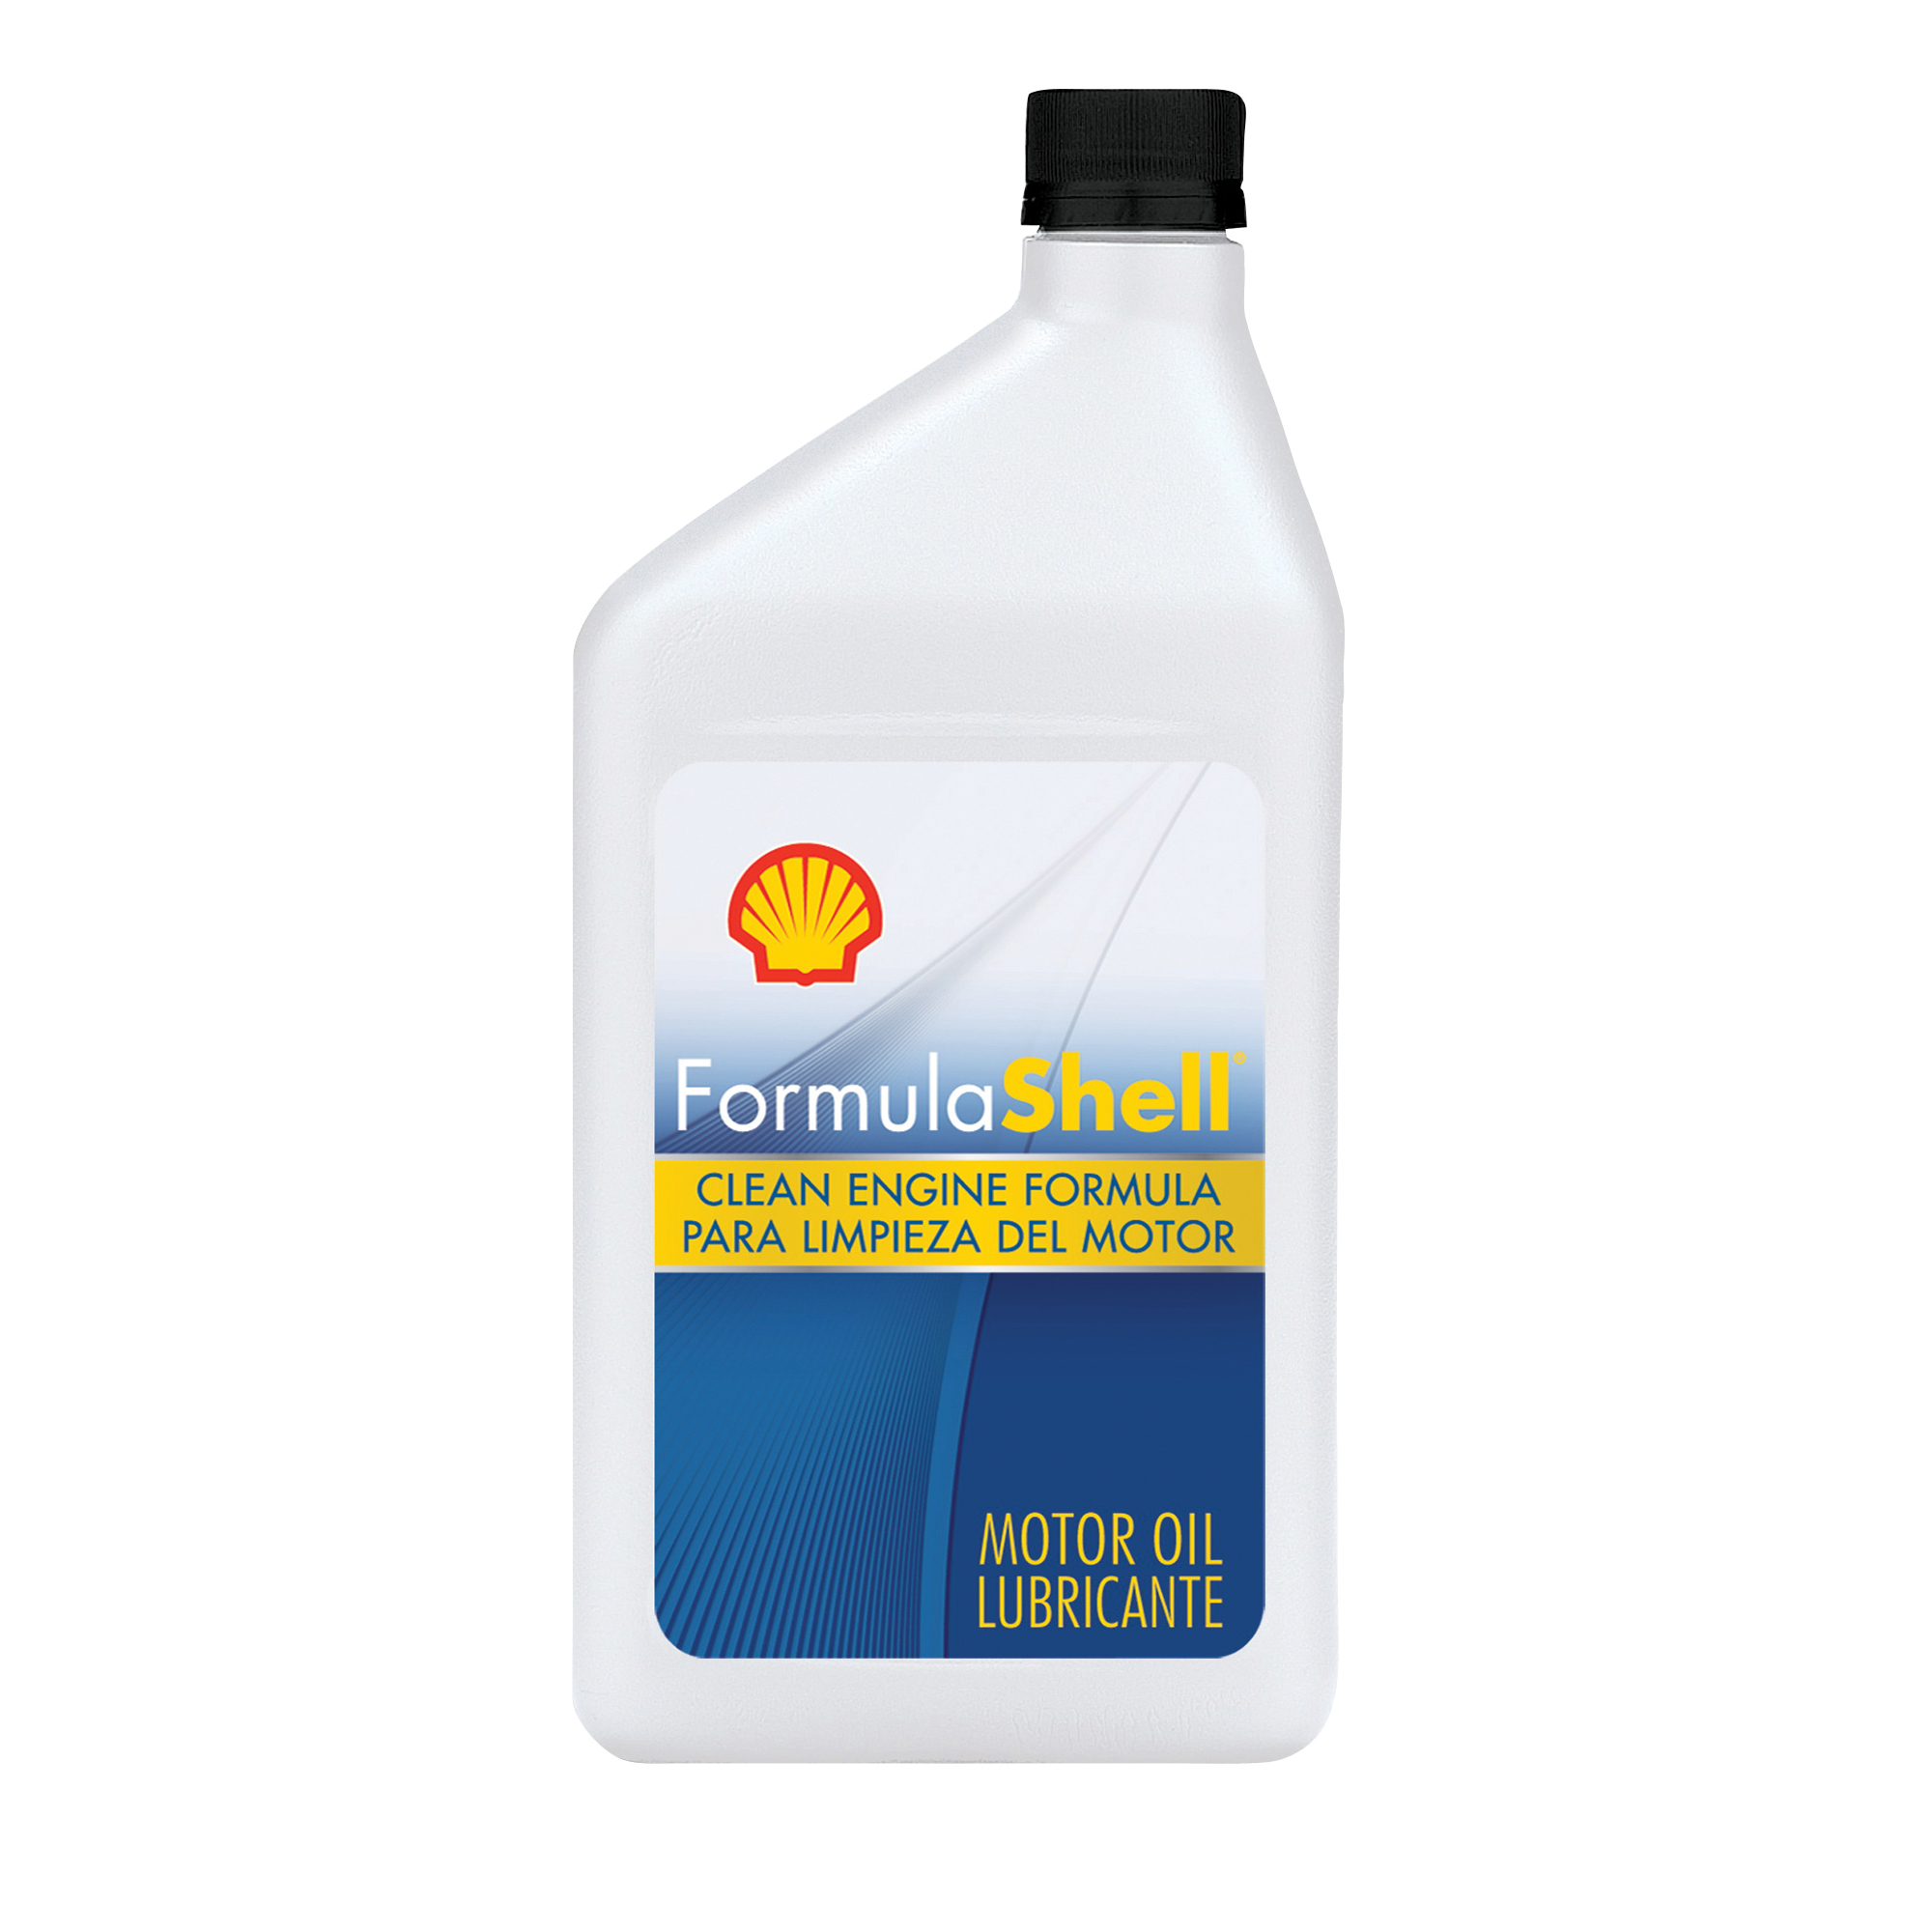 Picture of Formula Shell 550024069 Motor Oil, 10W-40, 1 qt Package, Bottle